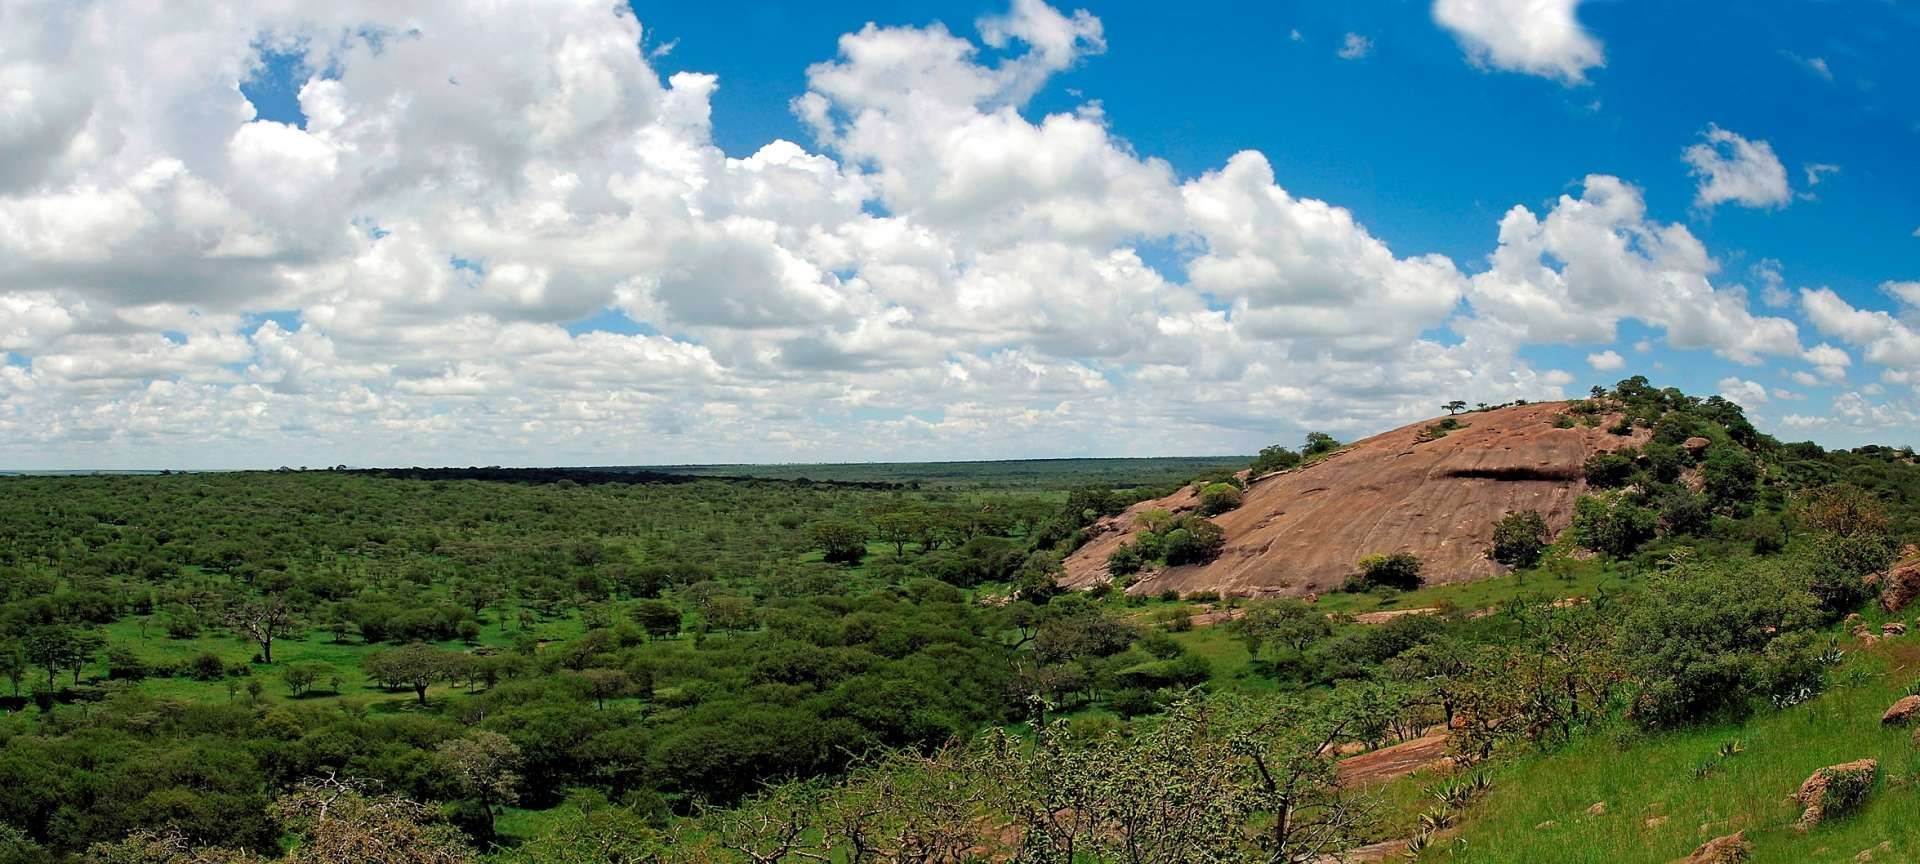 The Tanzanian landscape during the green. lush season